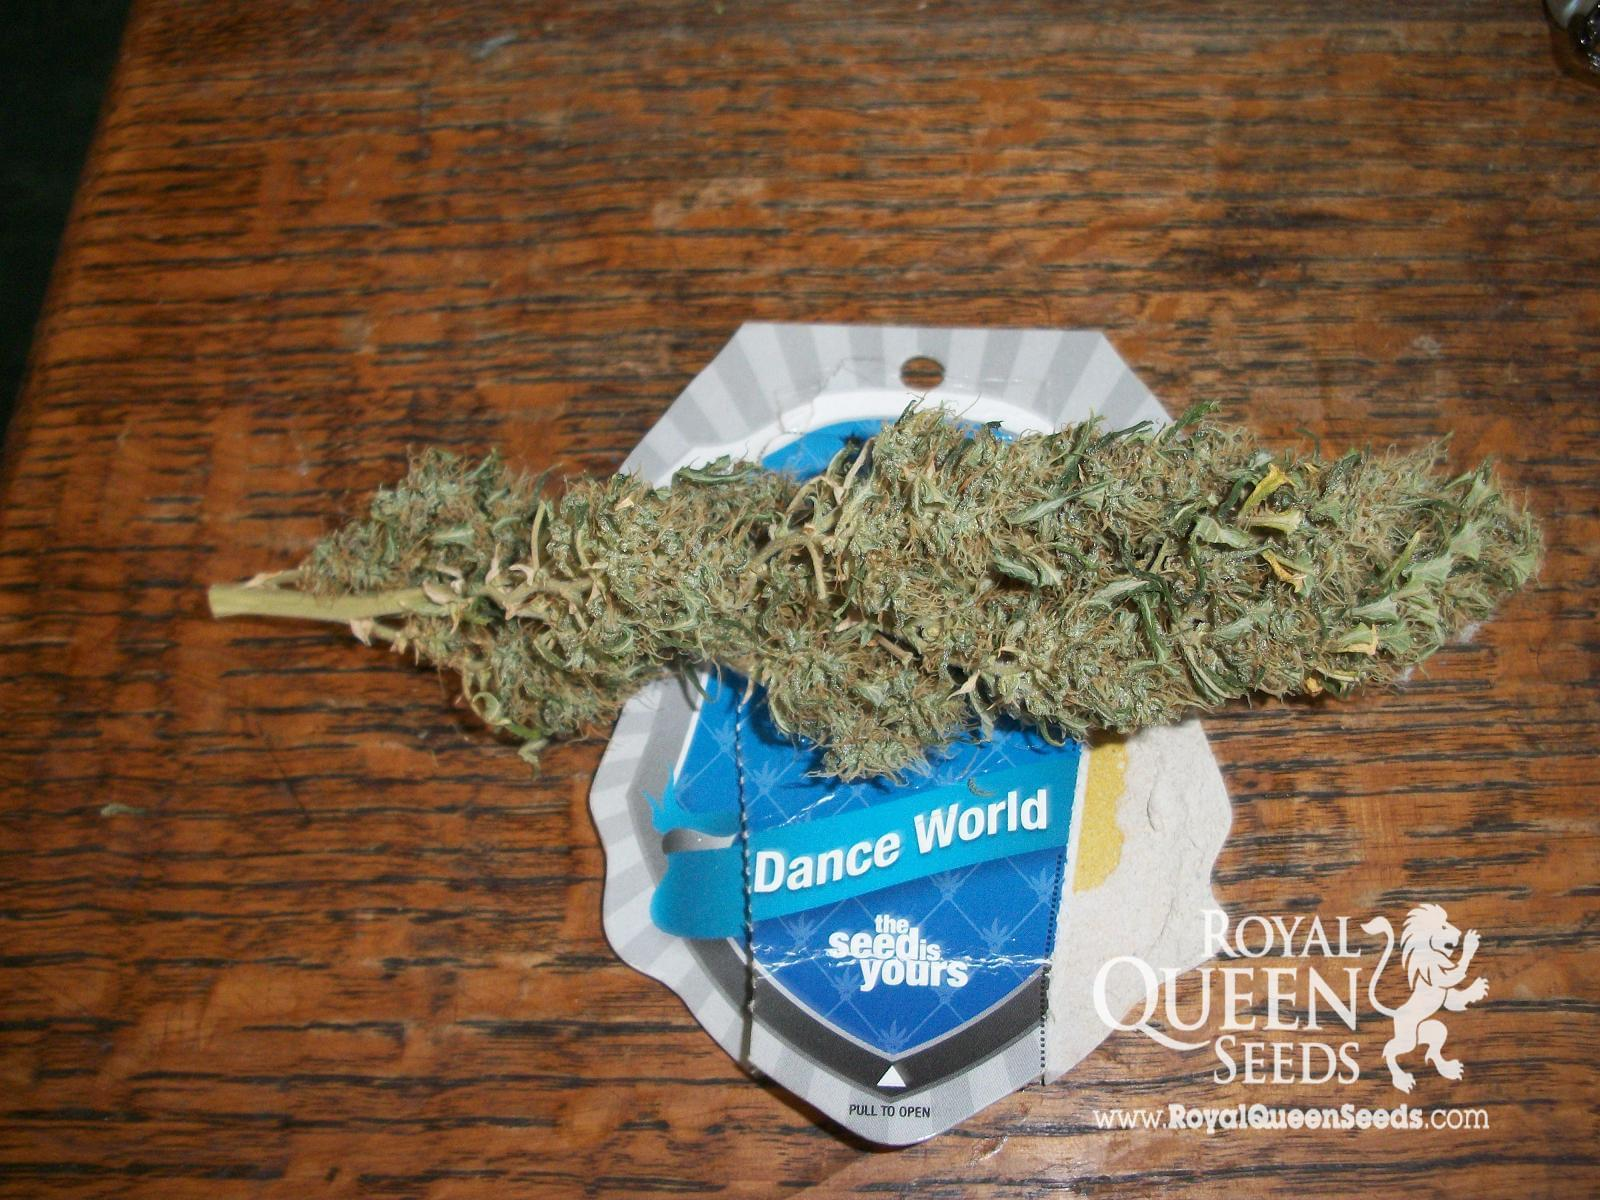 Dance World CBD cannabiszaad